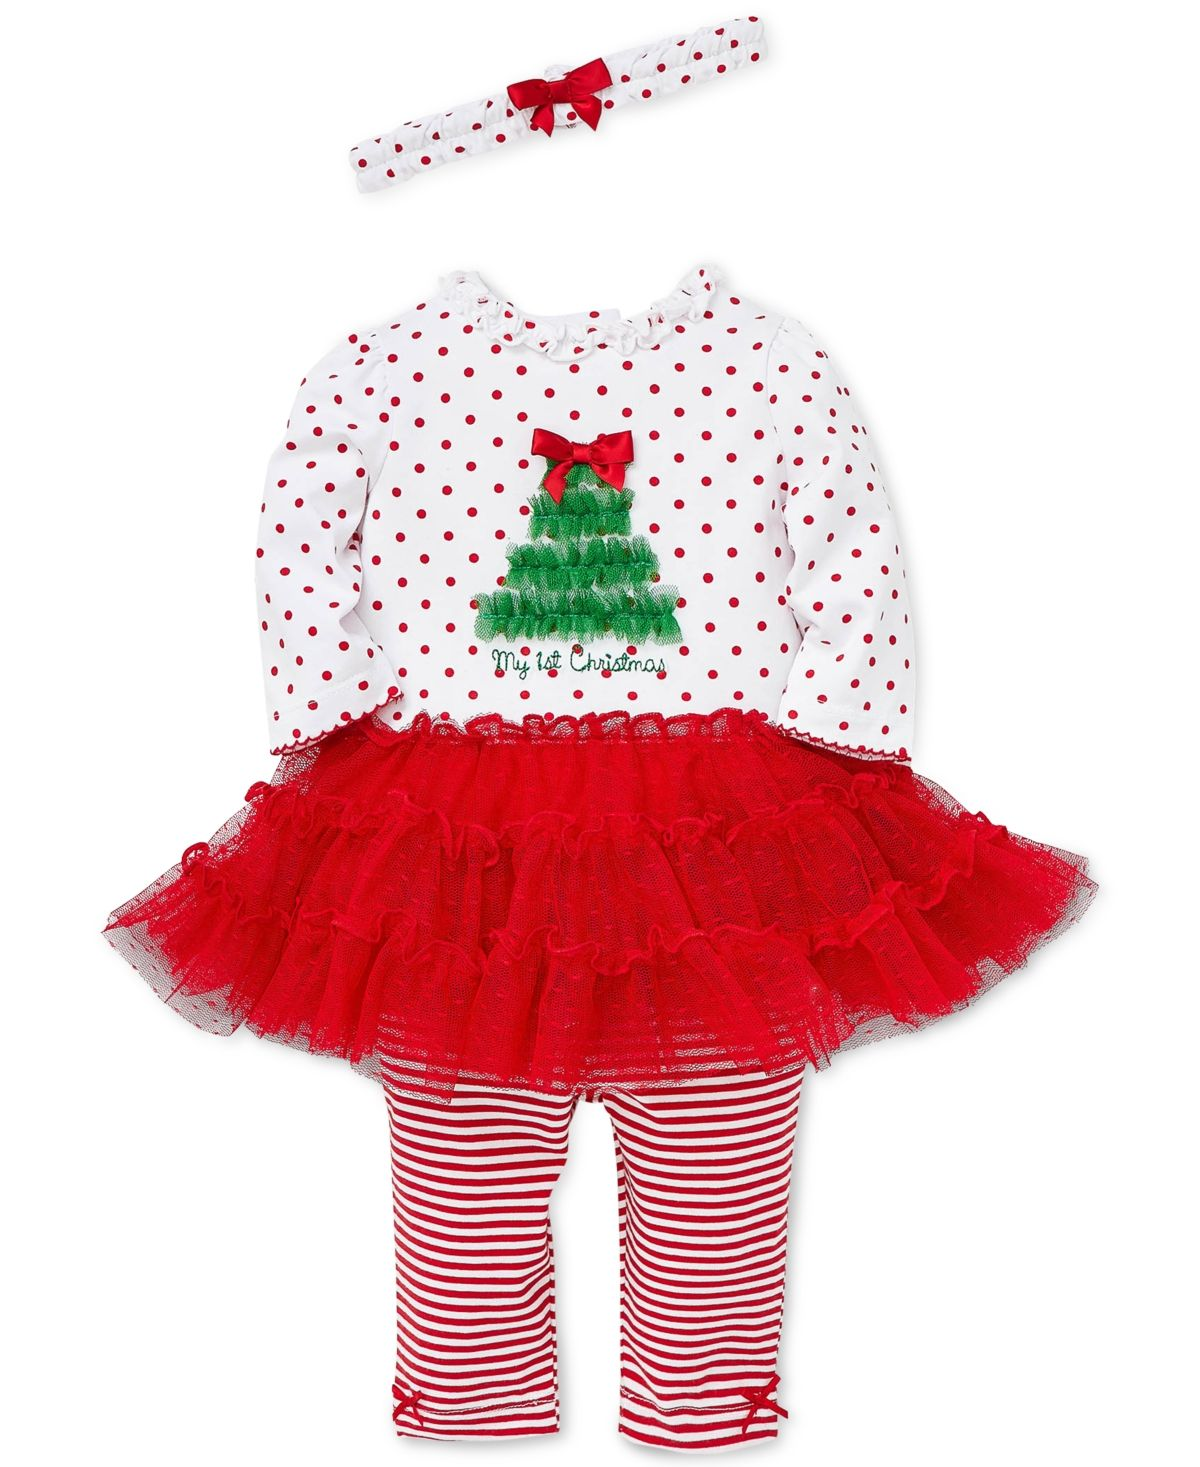 Baby Girls 3-Pc. Headband, Holiday Dress & Striped Leggings Set #stripedleggings